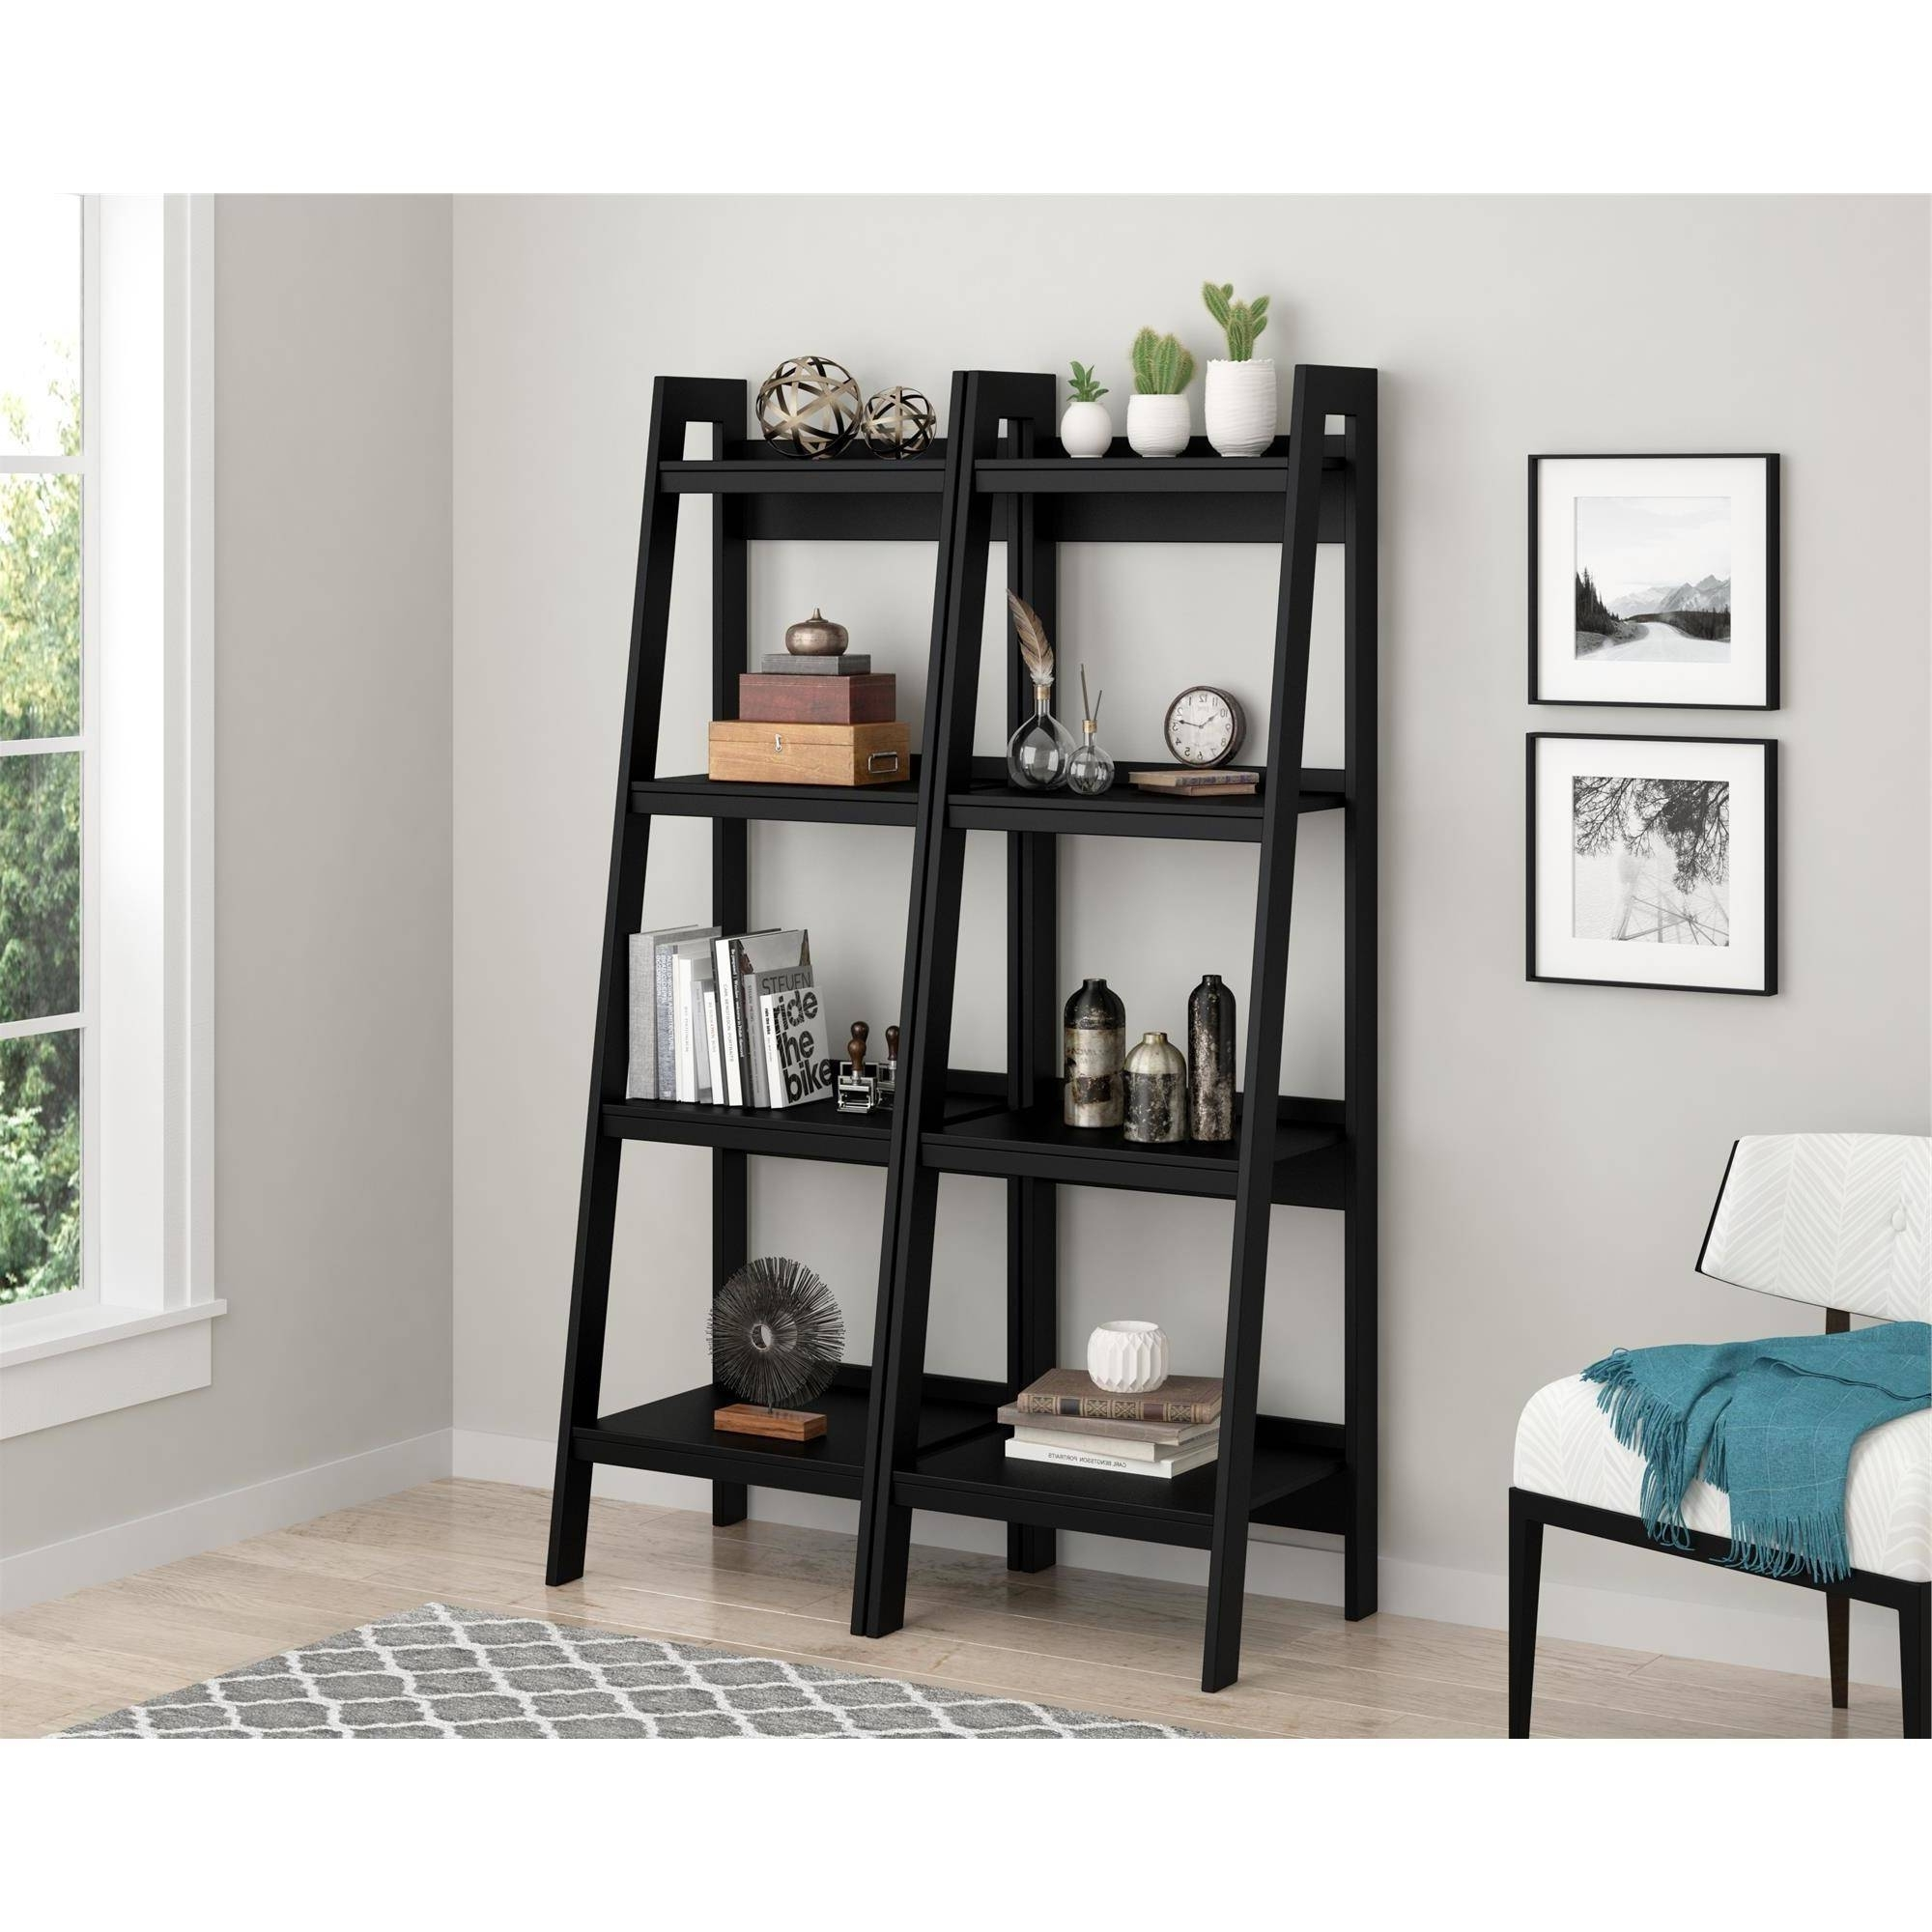 Black Bookcases Walmart Within Most Up To Date Ameriwood Home Lawrence 4 Shelf Ladder Bookcase Bundle, Black (Set (View 9 of 15)